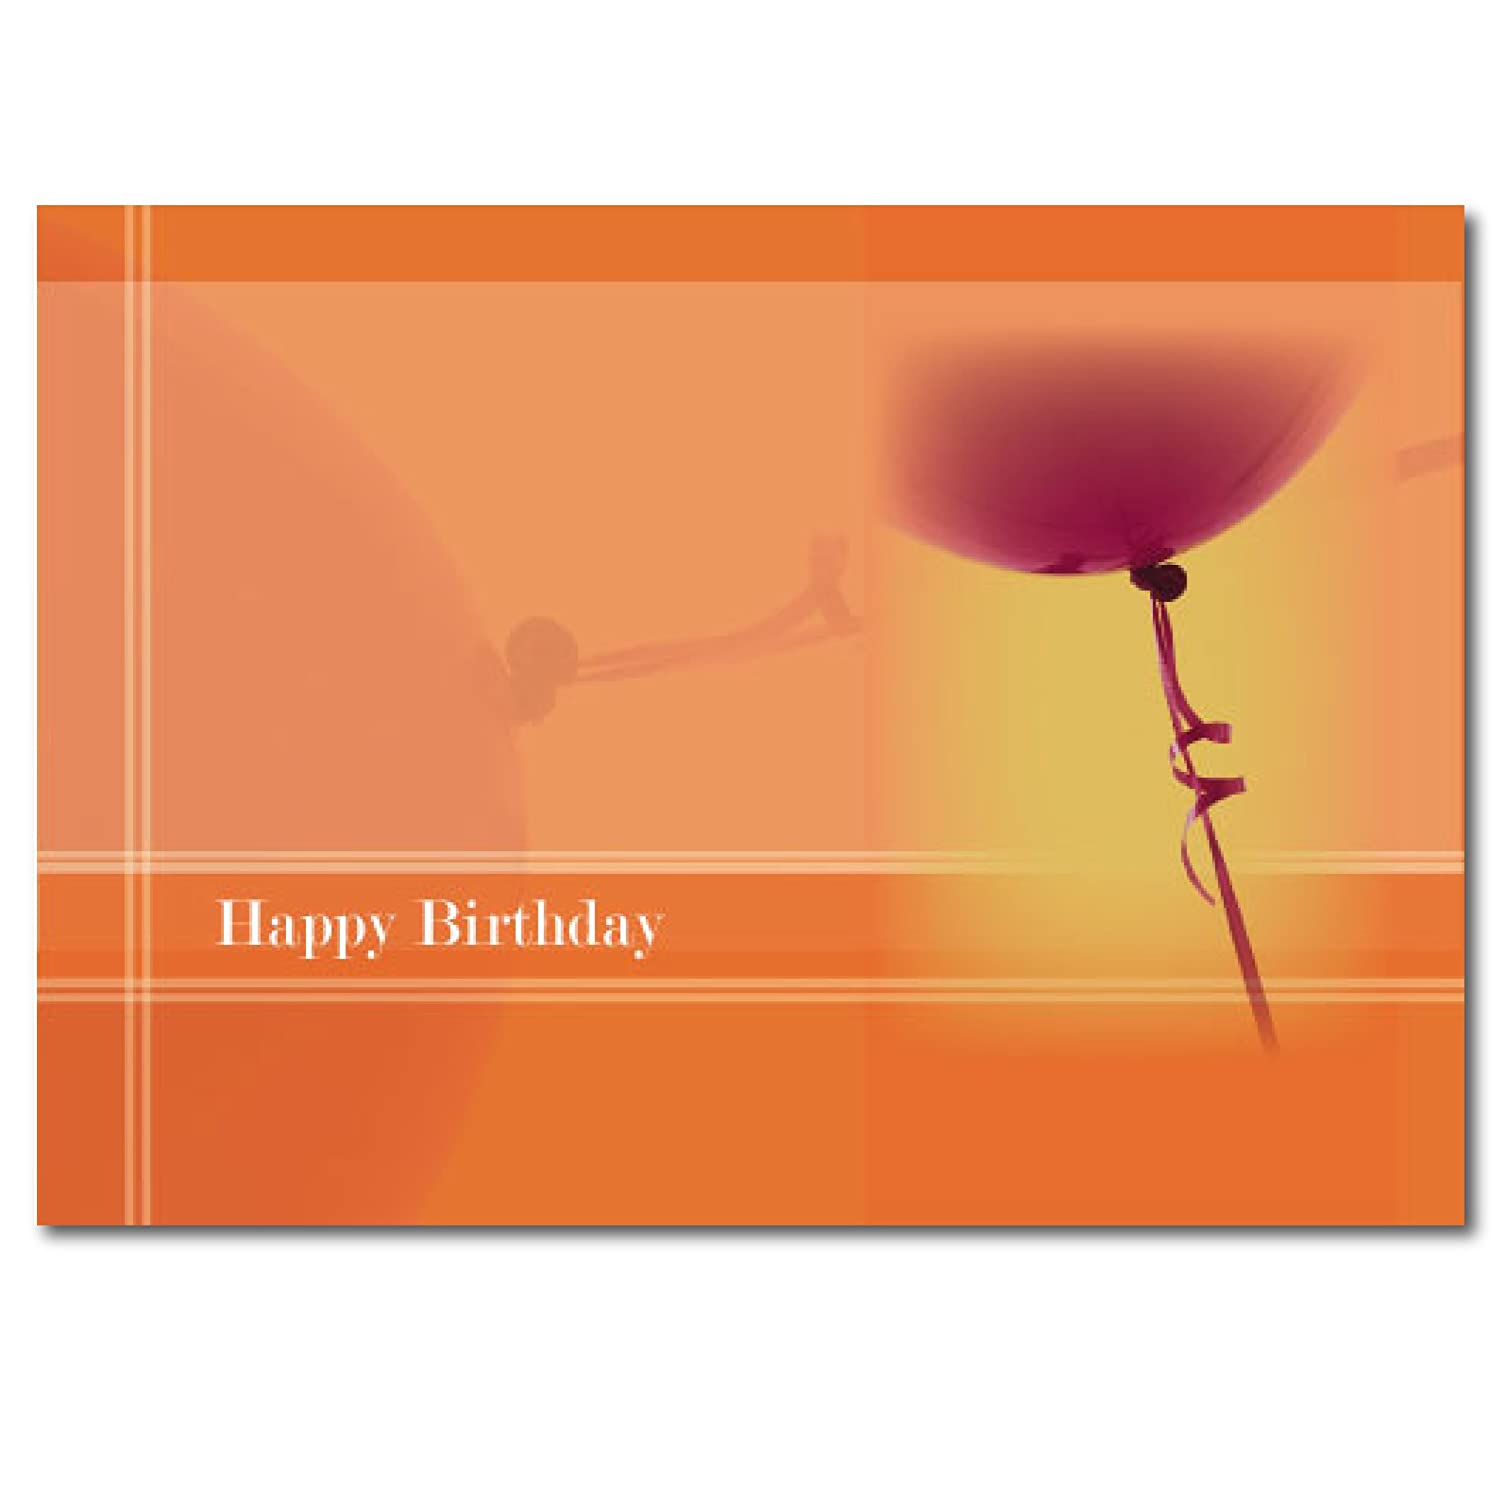 6 design birthday greeting card assortment a 30 card